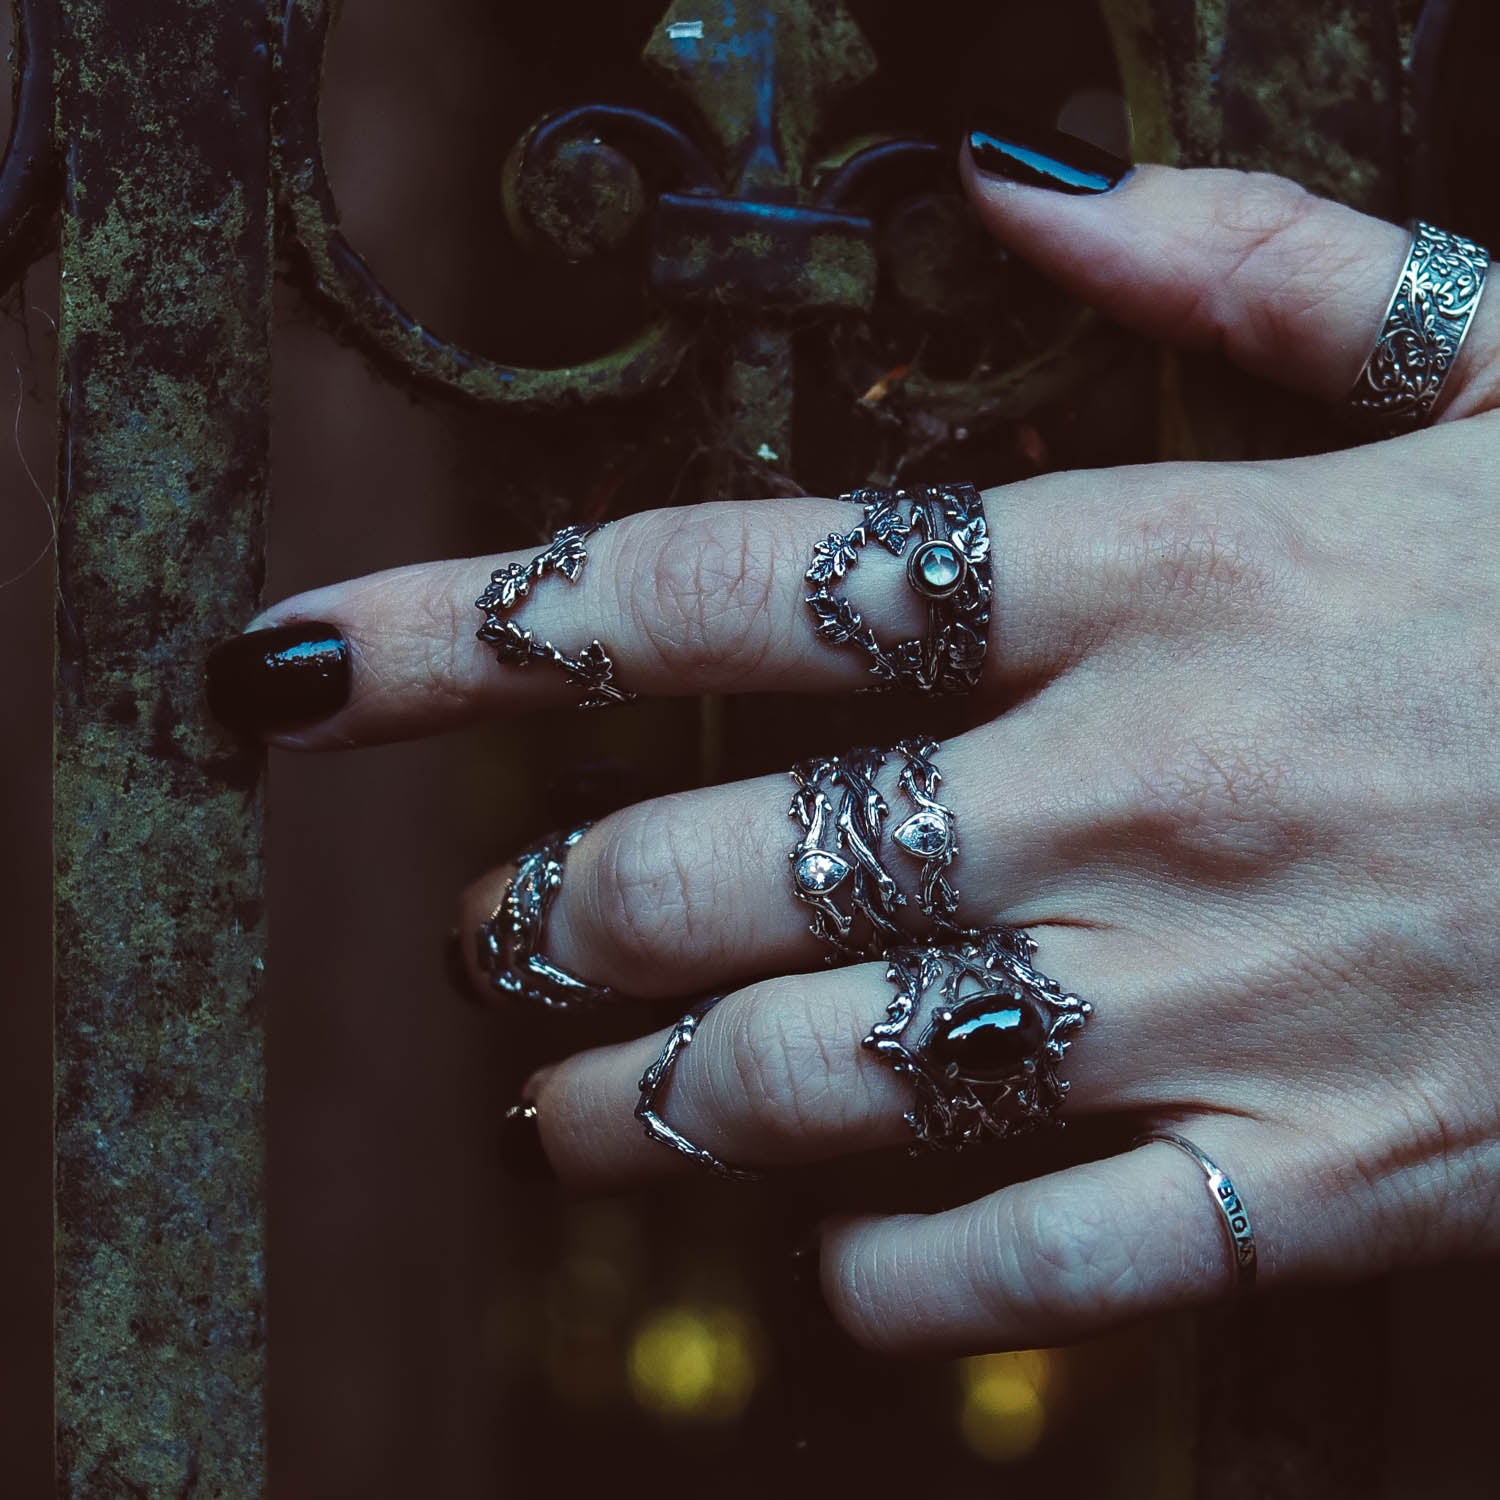 Sylvestris Deus Ivy Leaf Deep Wishbone Gothic Ring